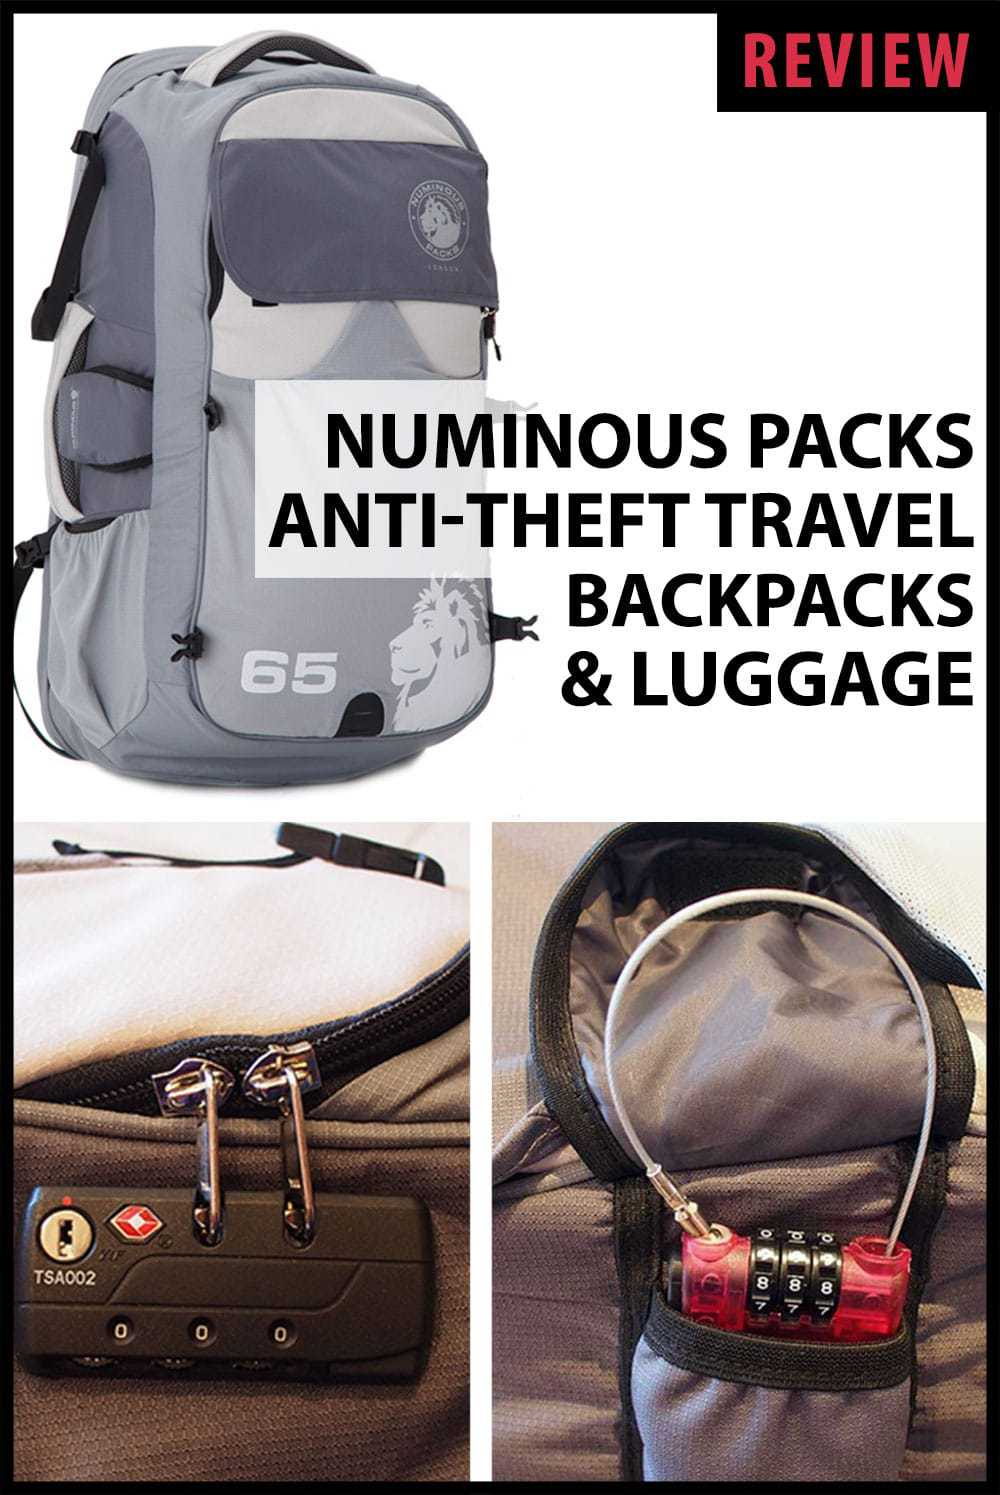 Numinous Packs Anti-Theft Travel Backpacks and Luggage Review by Calculated Traveller